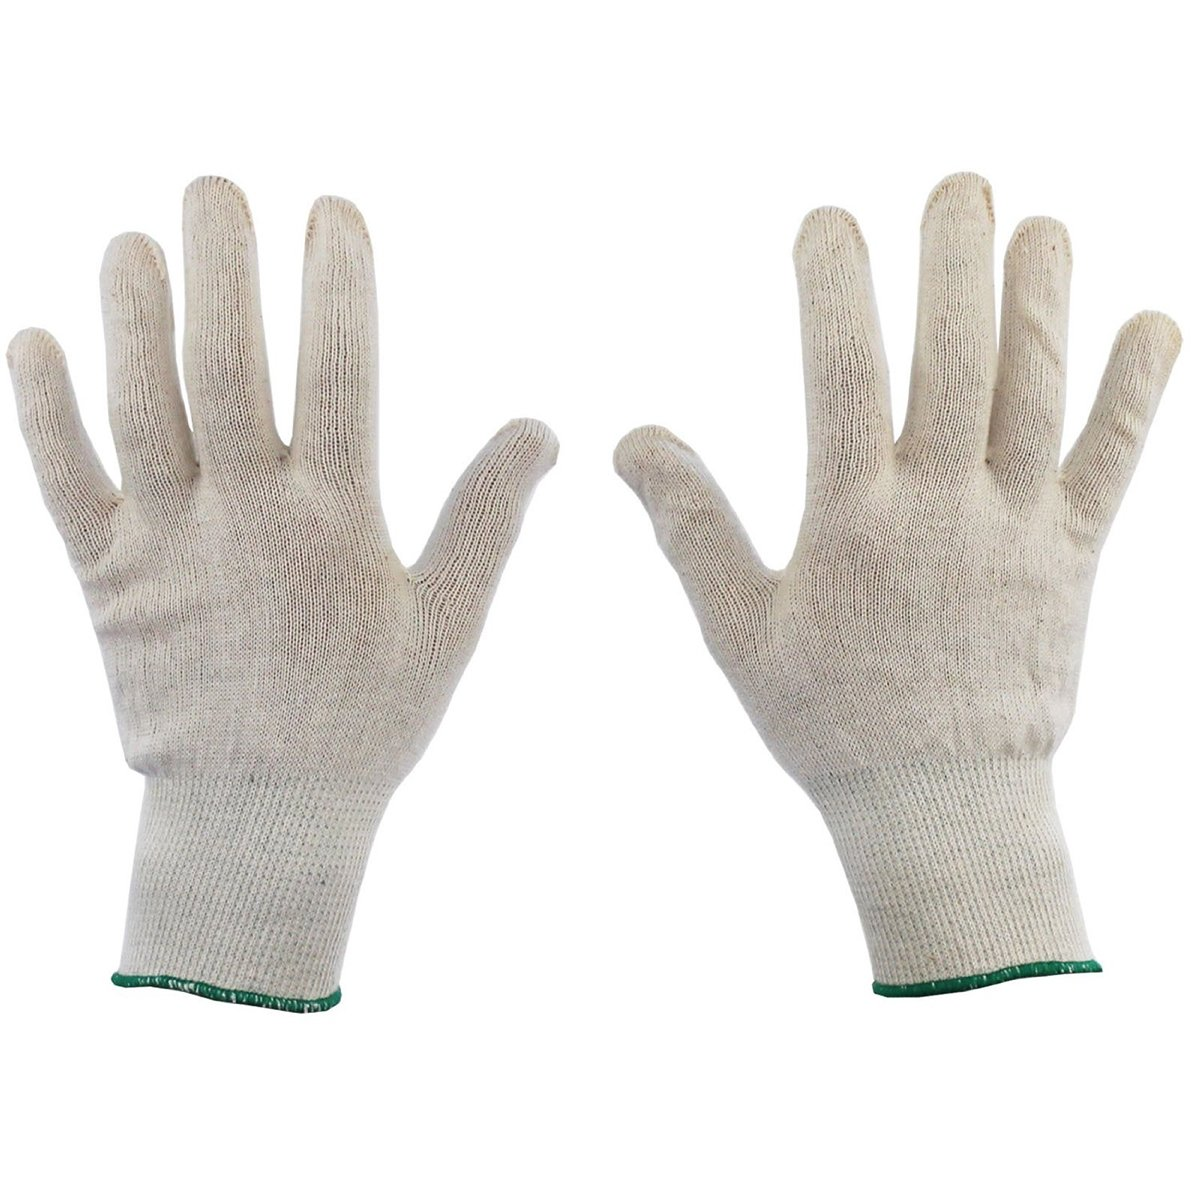 Tinksky 6 Pairs Cotton Gloves Health Canvas Beauty Work Liner White